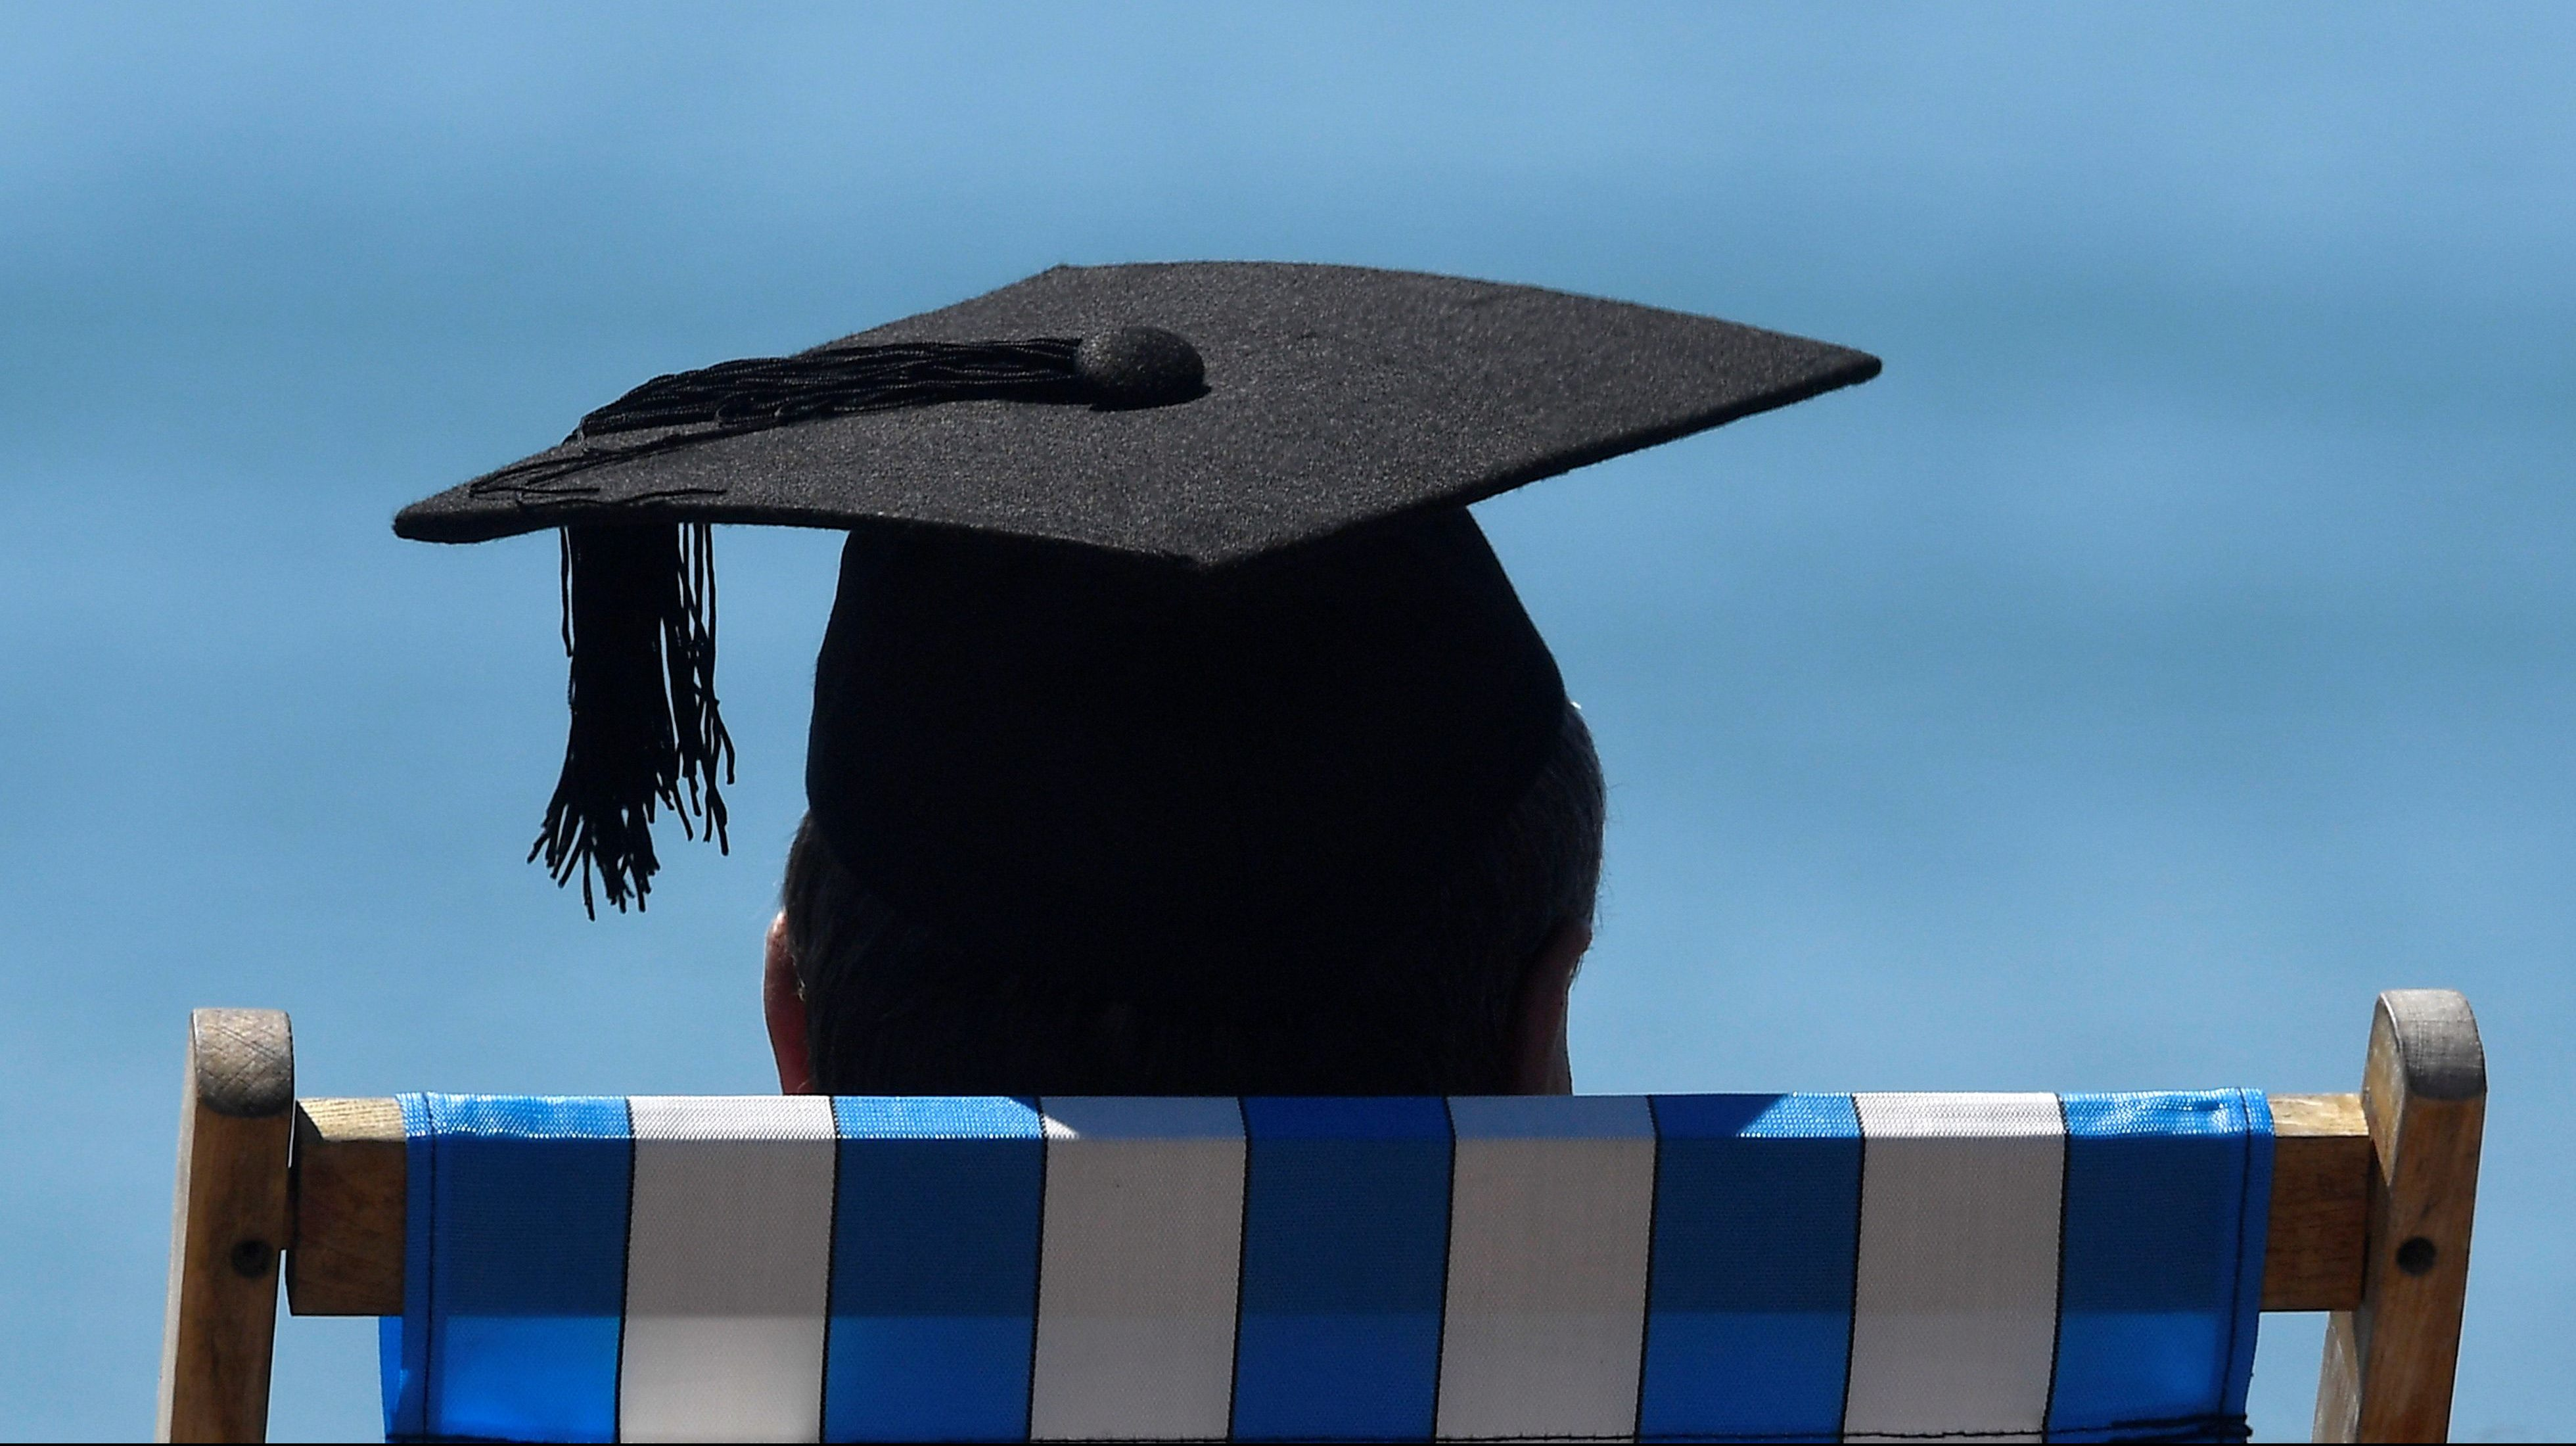 Free university courses you can take online for degree credit